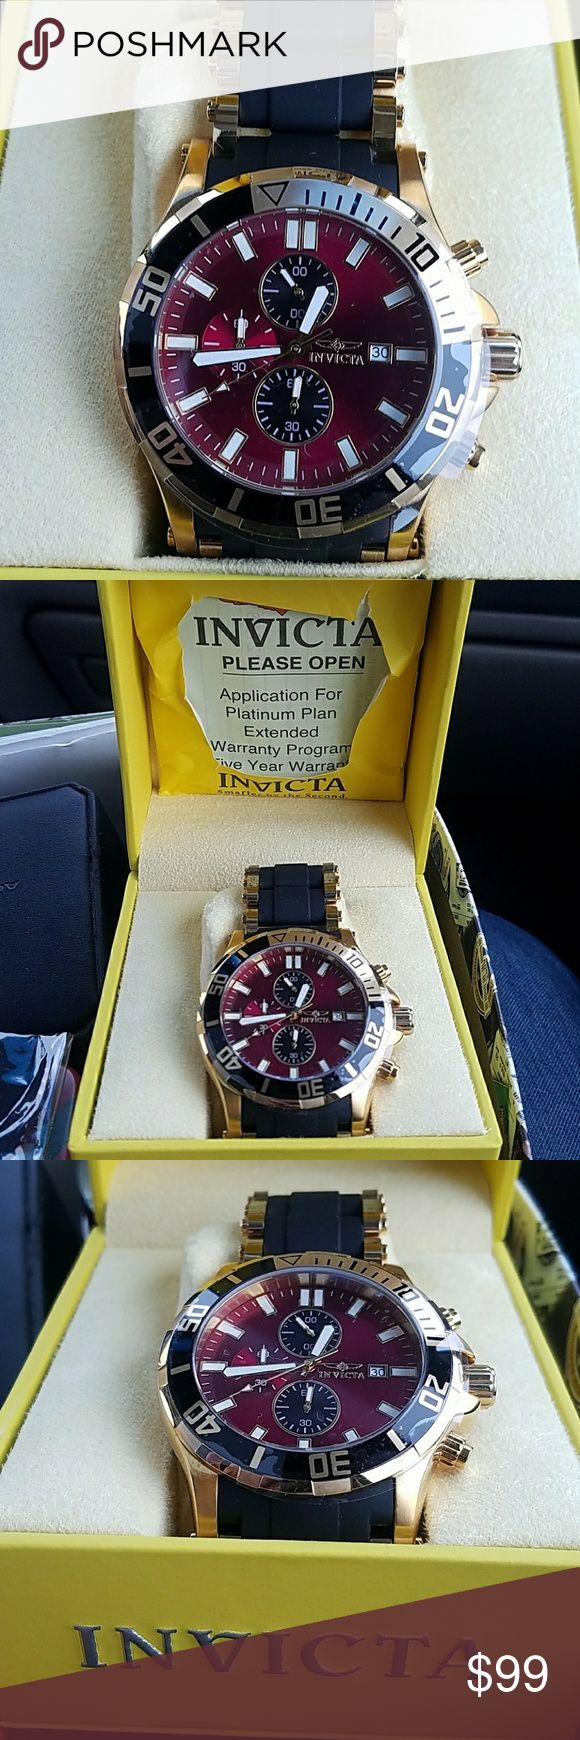 BN Invicta watch in Original Box with paperwork I received this as well as a couple of other wayches that I presently have for sale from a very wealthy estate I recently liquidated. I know I have priced it VERY low, but I do not know anything about it. It has all of the instruction manual and paperwork for a warranty as well. Please let the photos speak for themselves. Invicta Accessories Watches